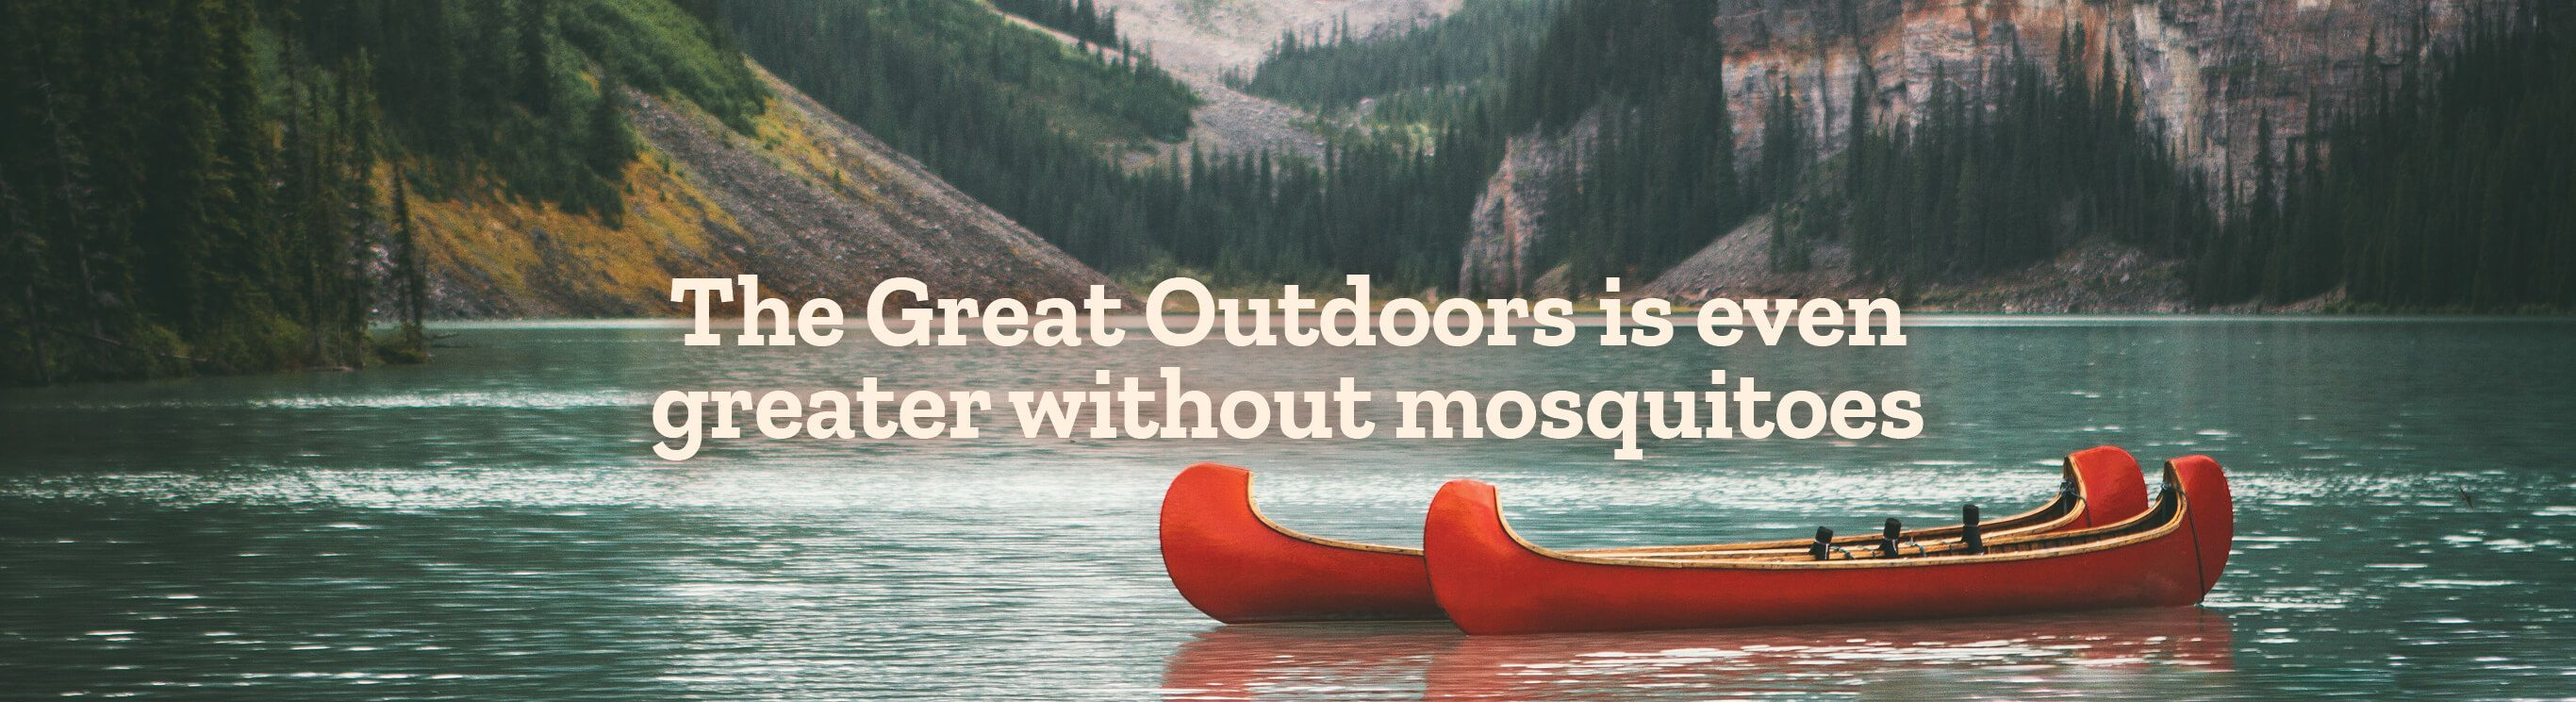 The Great Outdoors is even greater without mosquitoes.